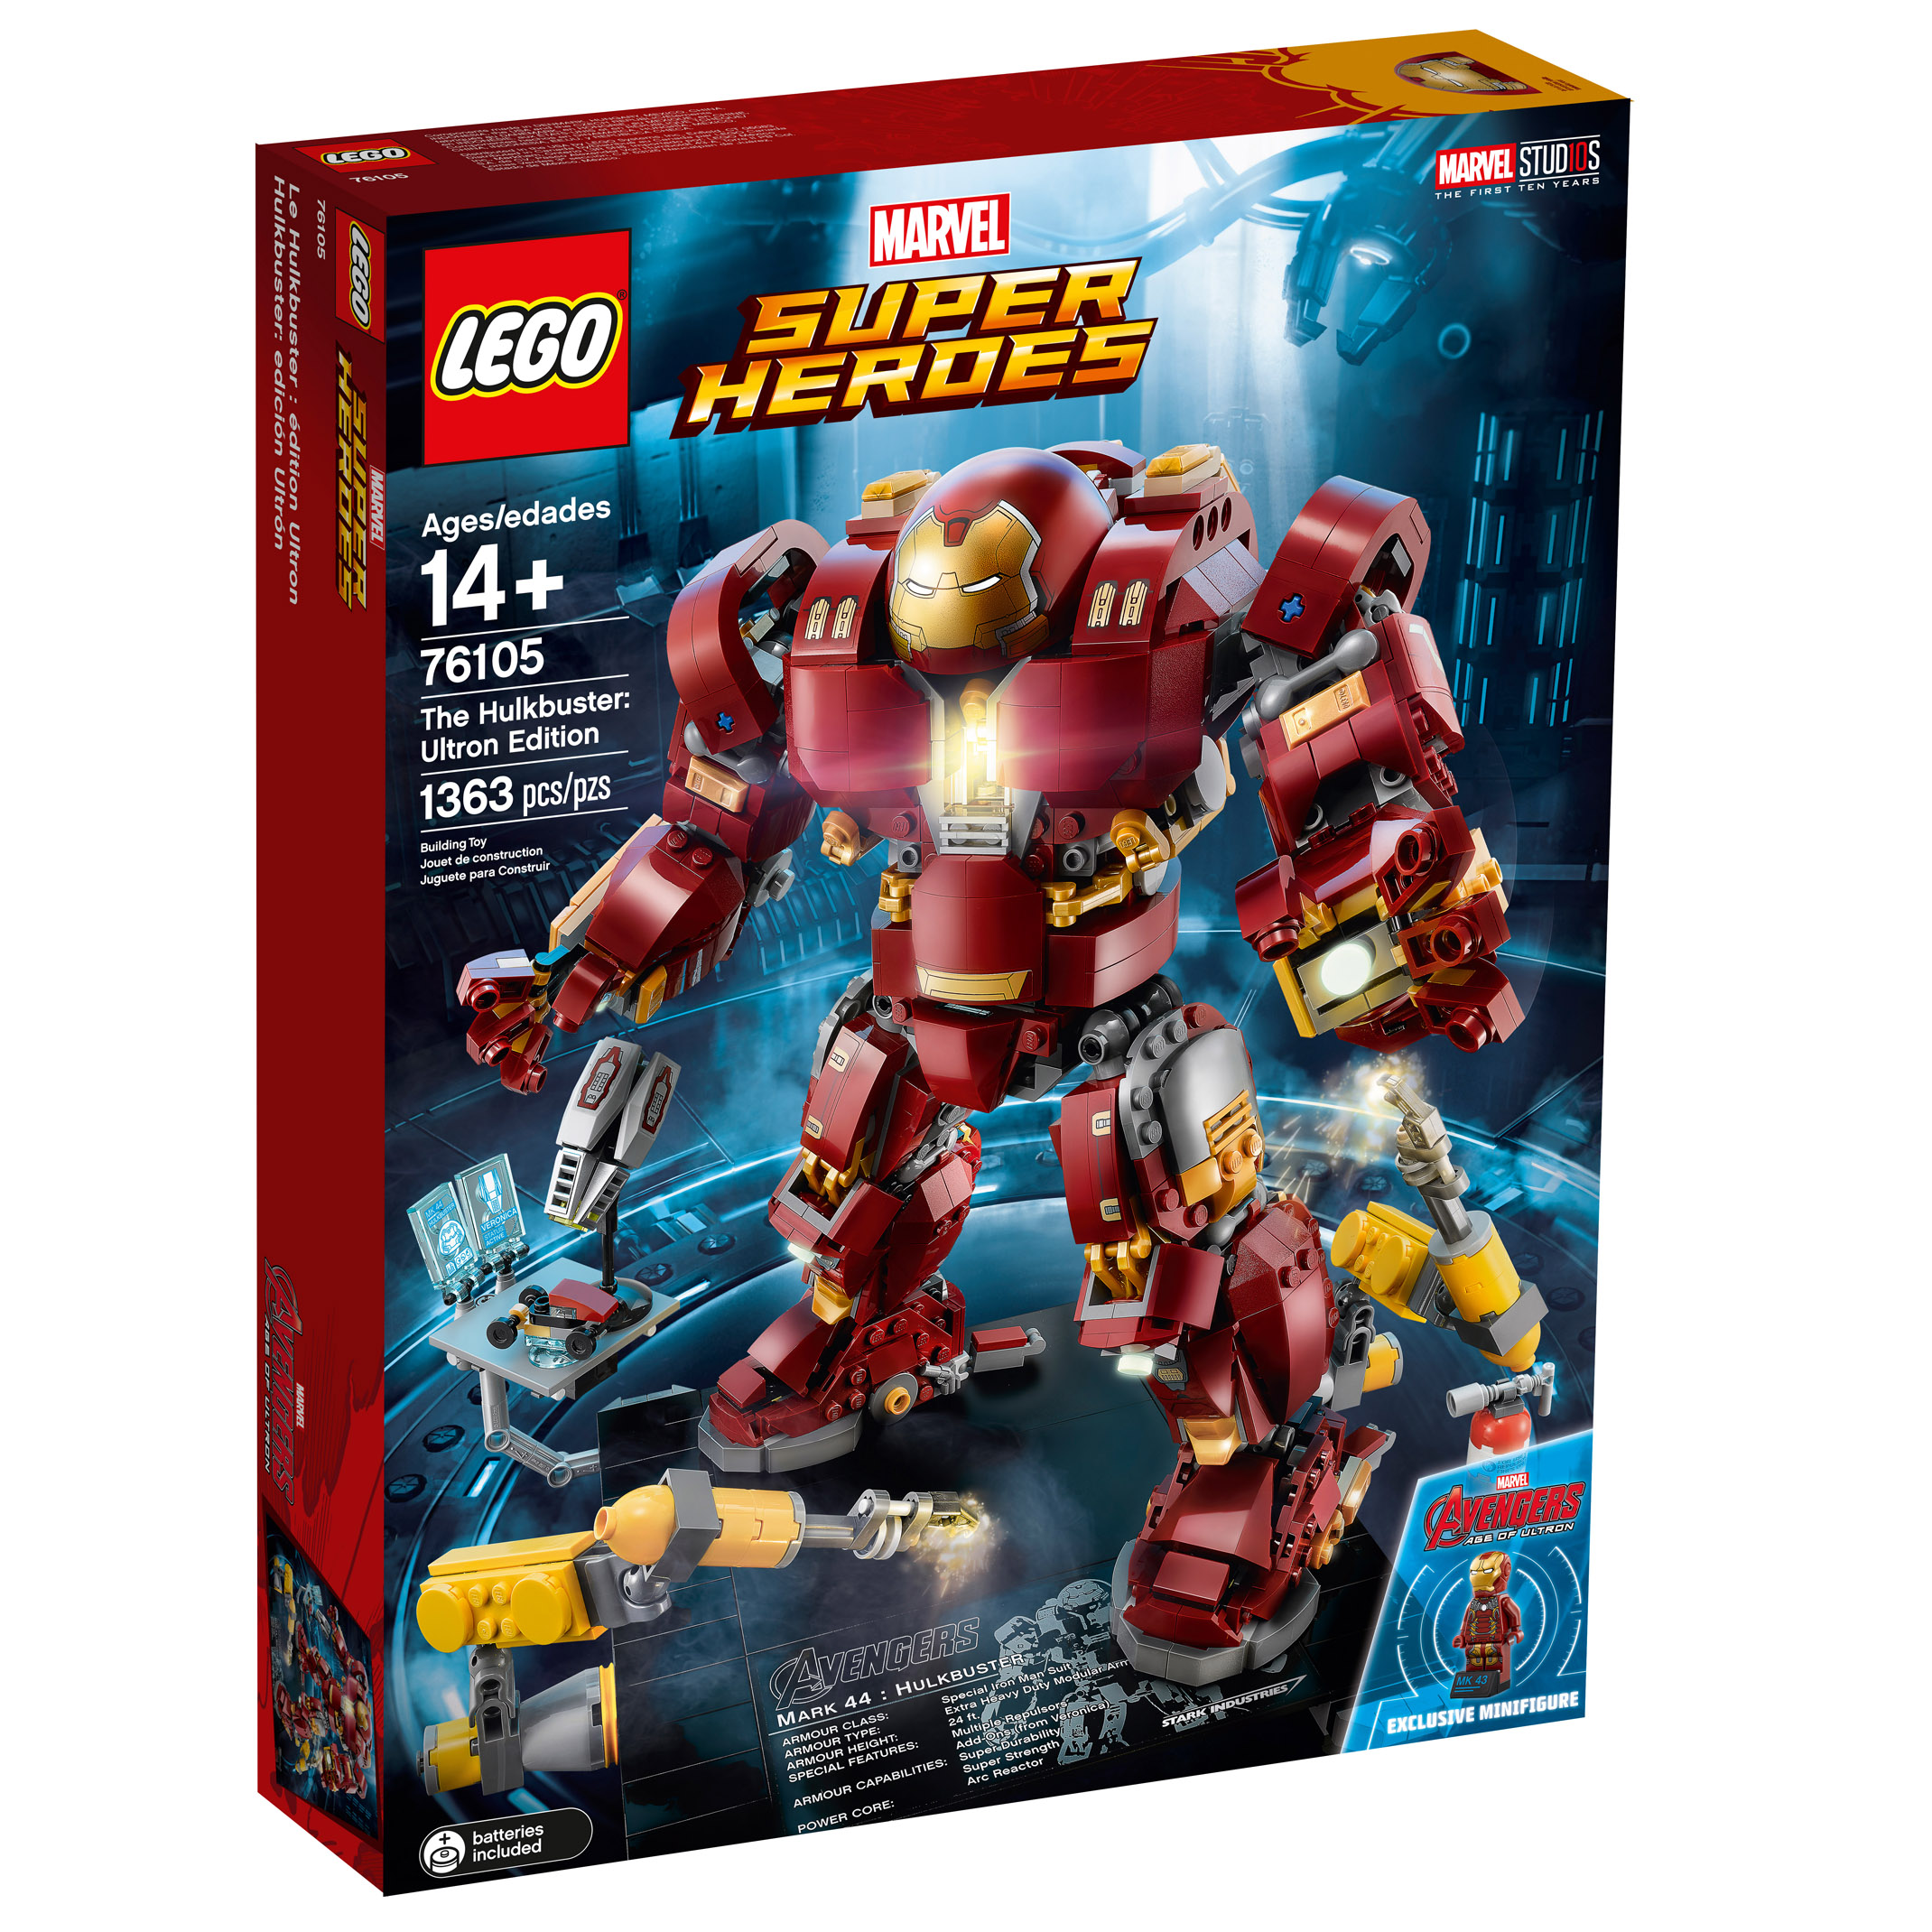 LEGO Marvel Super Heroes The Hulkbuster: Ultron Edition (76105)